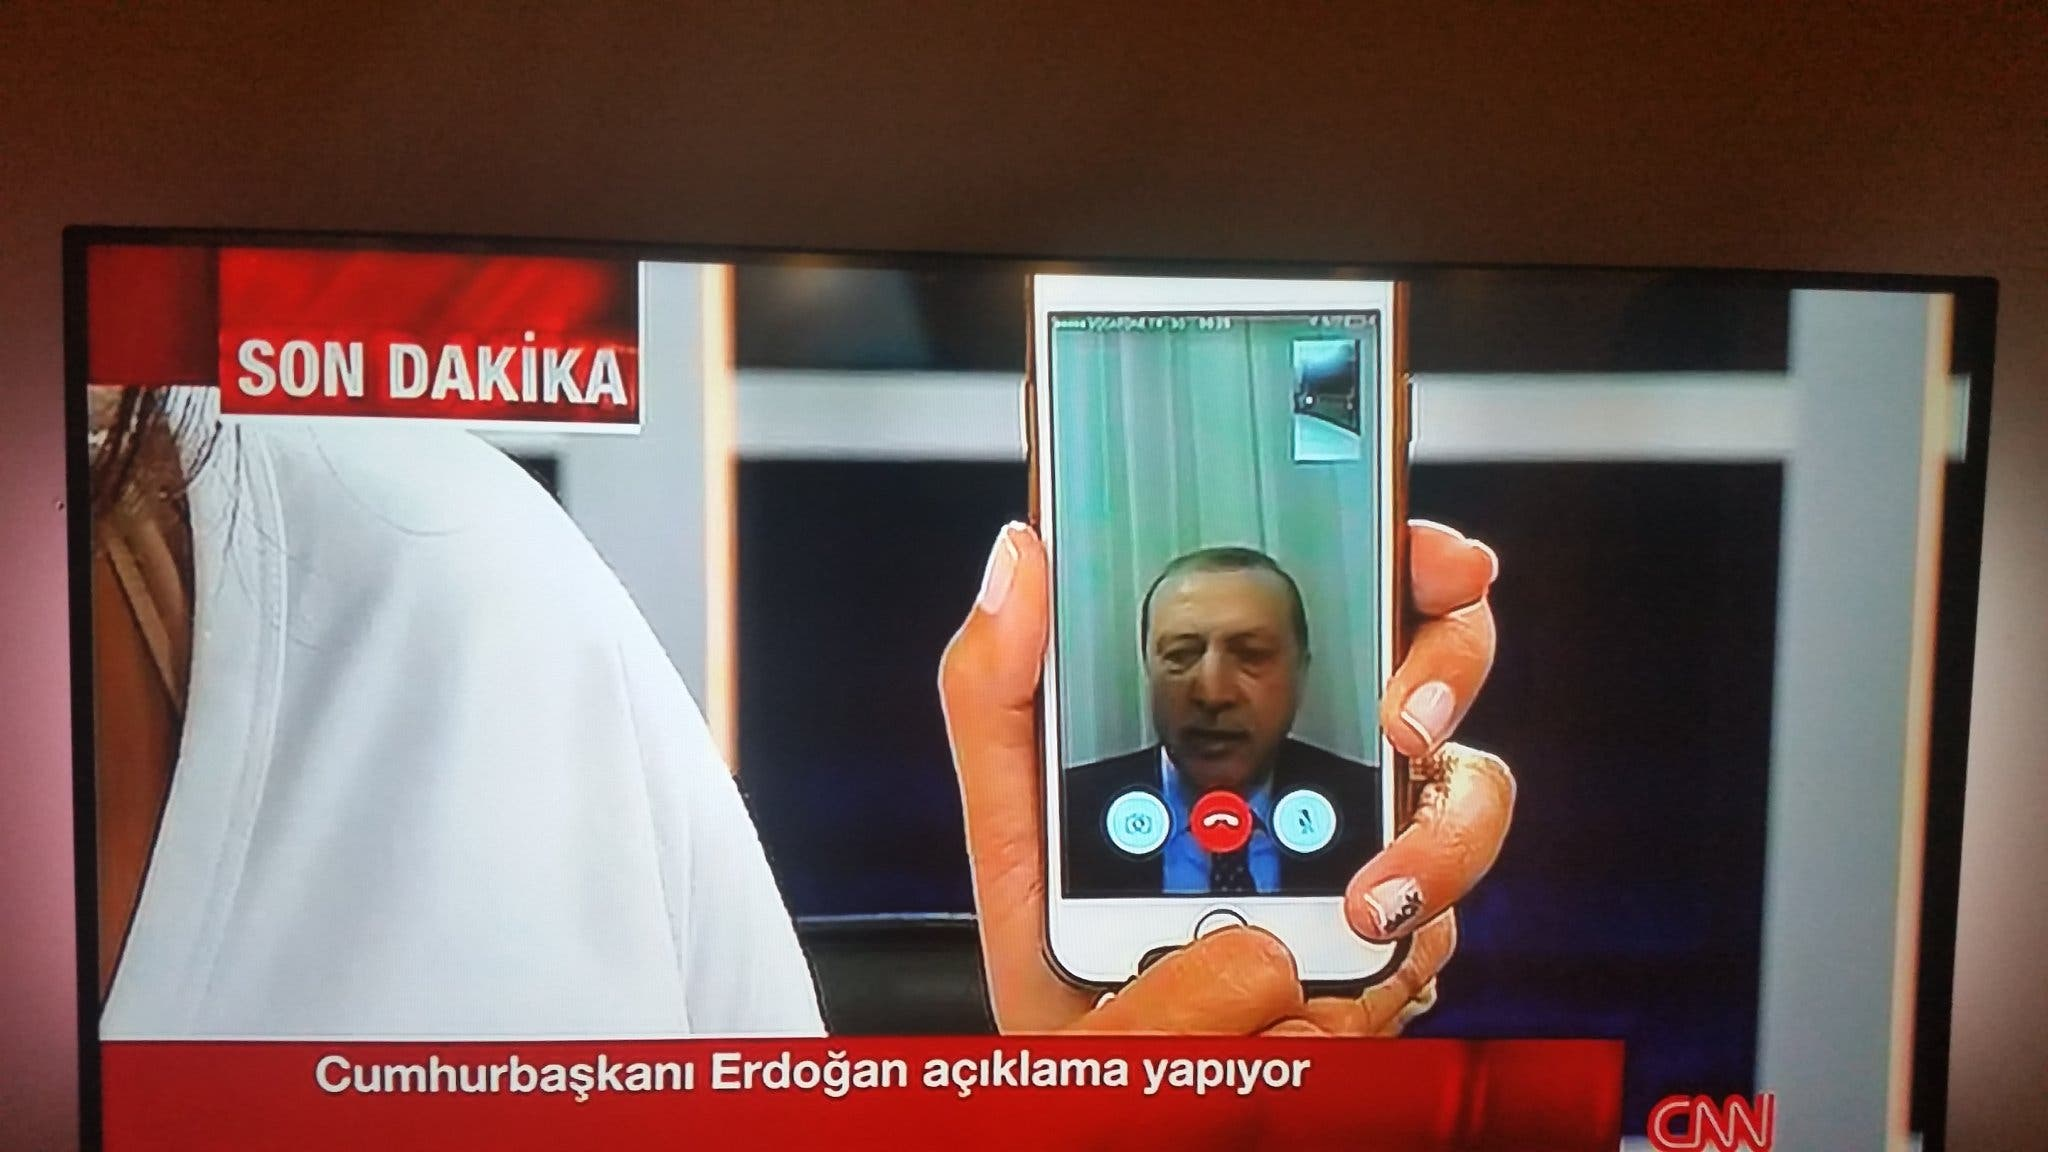 erdogan social media skype